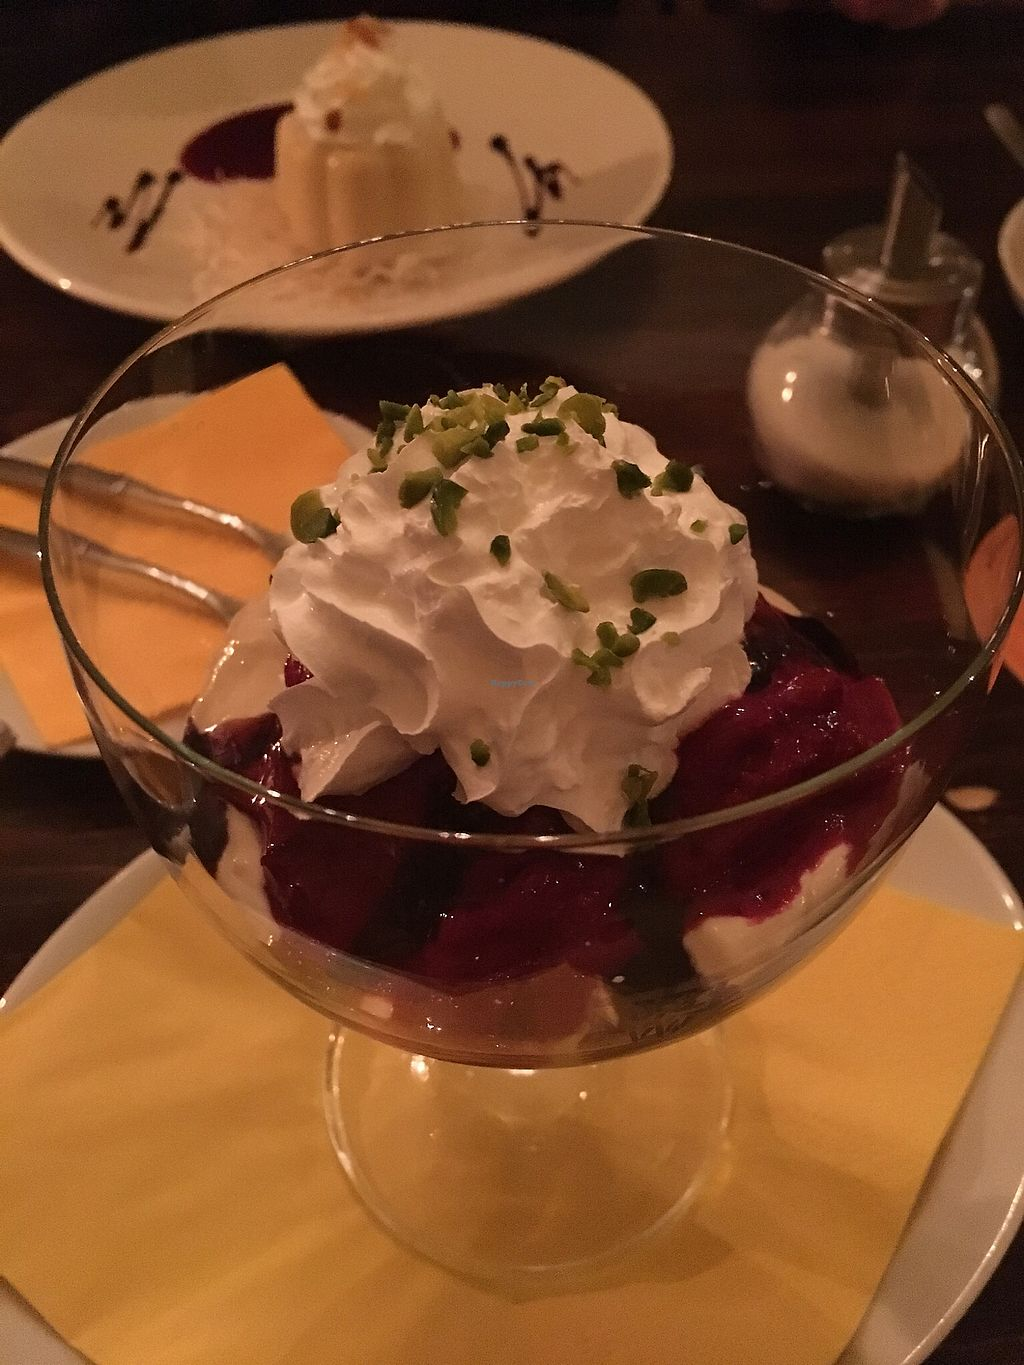 "Photo of Vaust Braugaststatte  by <a href=""/members/profile/berrywilson82"">berrywilson82</a> <br/>Delicious desserts ? <br/> April 4, 2018  - <a href='/contact/abuse/image/32229/380631'>Report</a>"